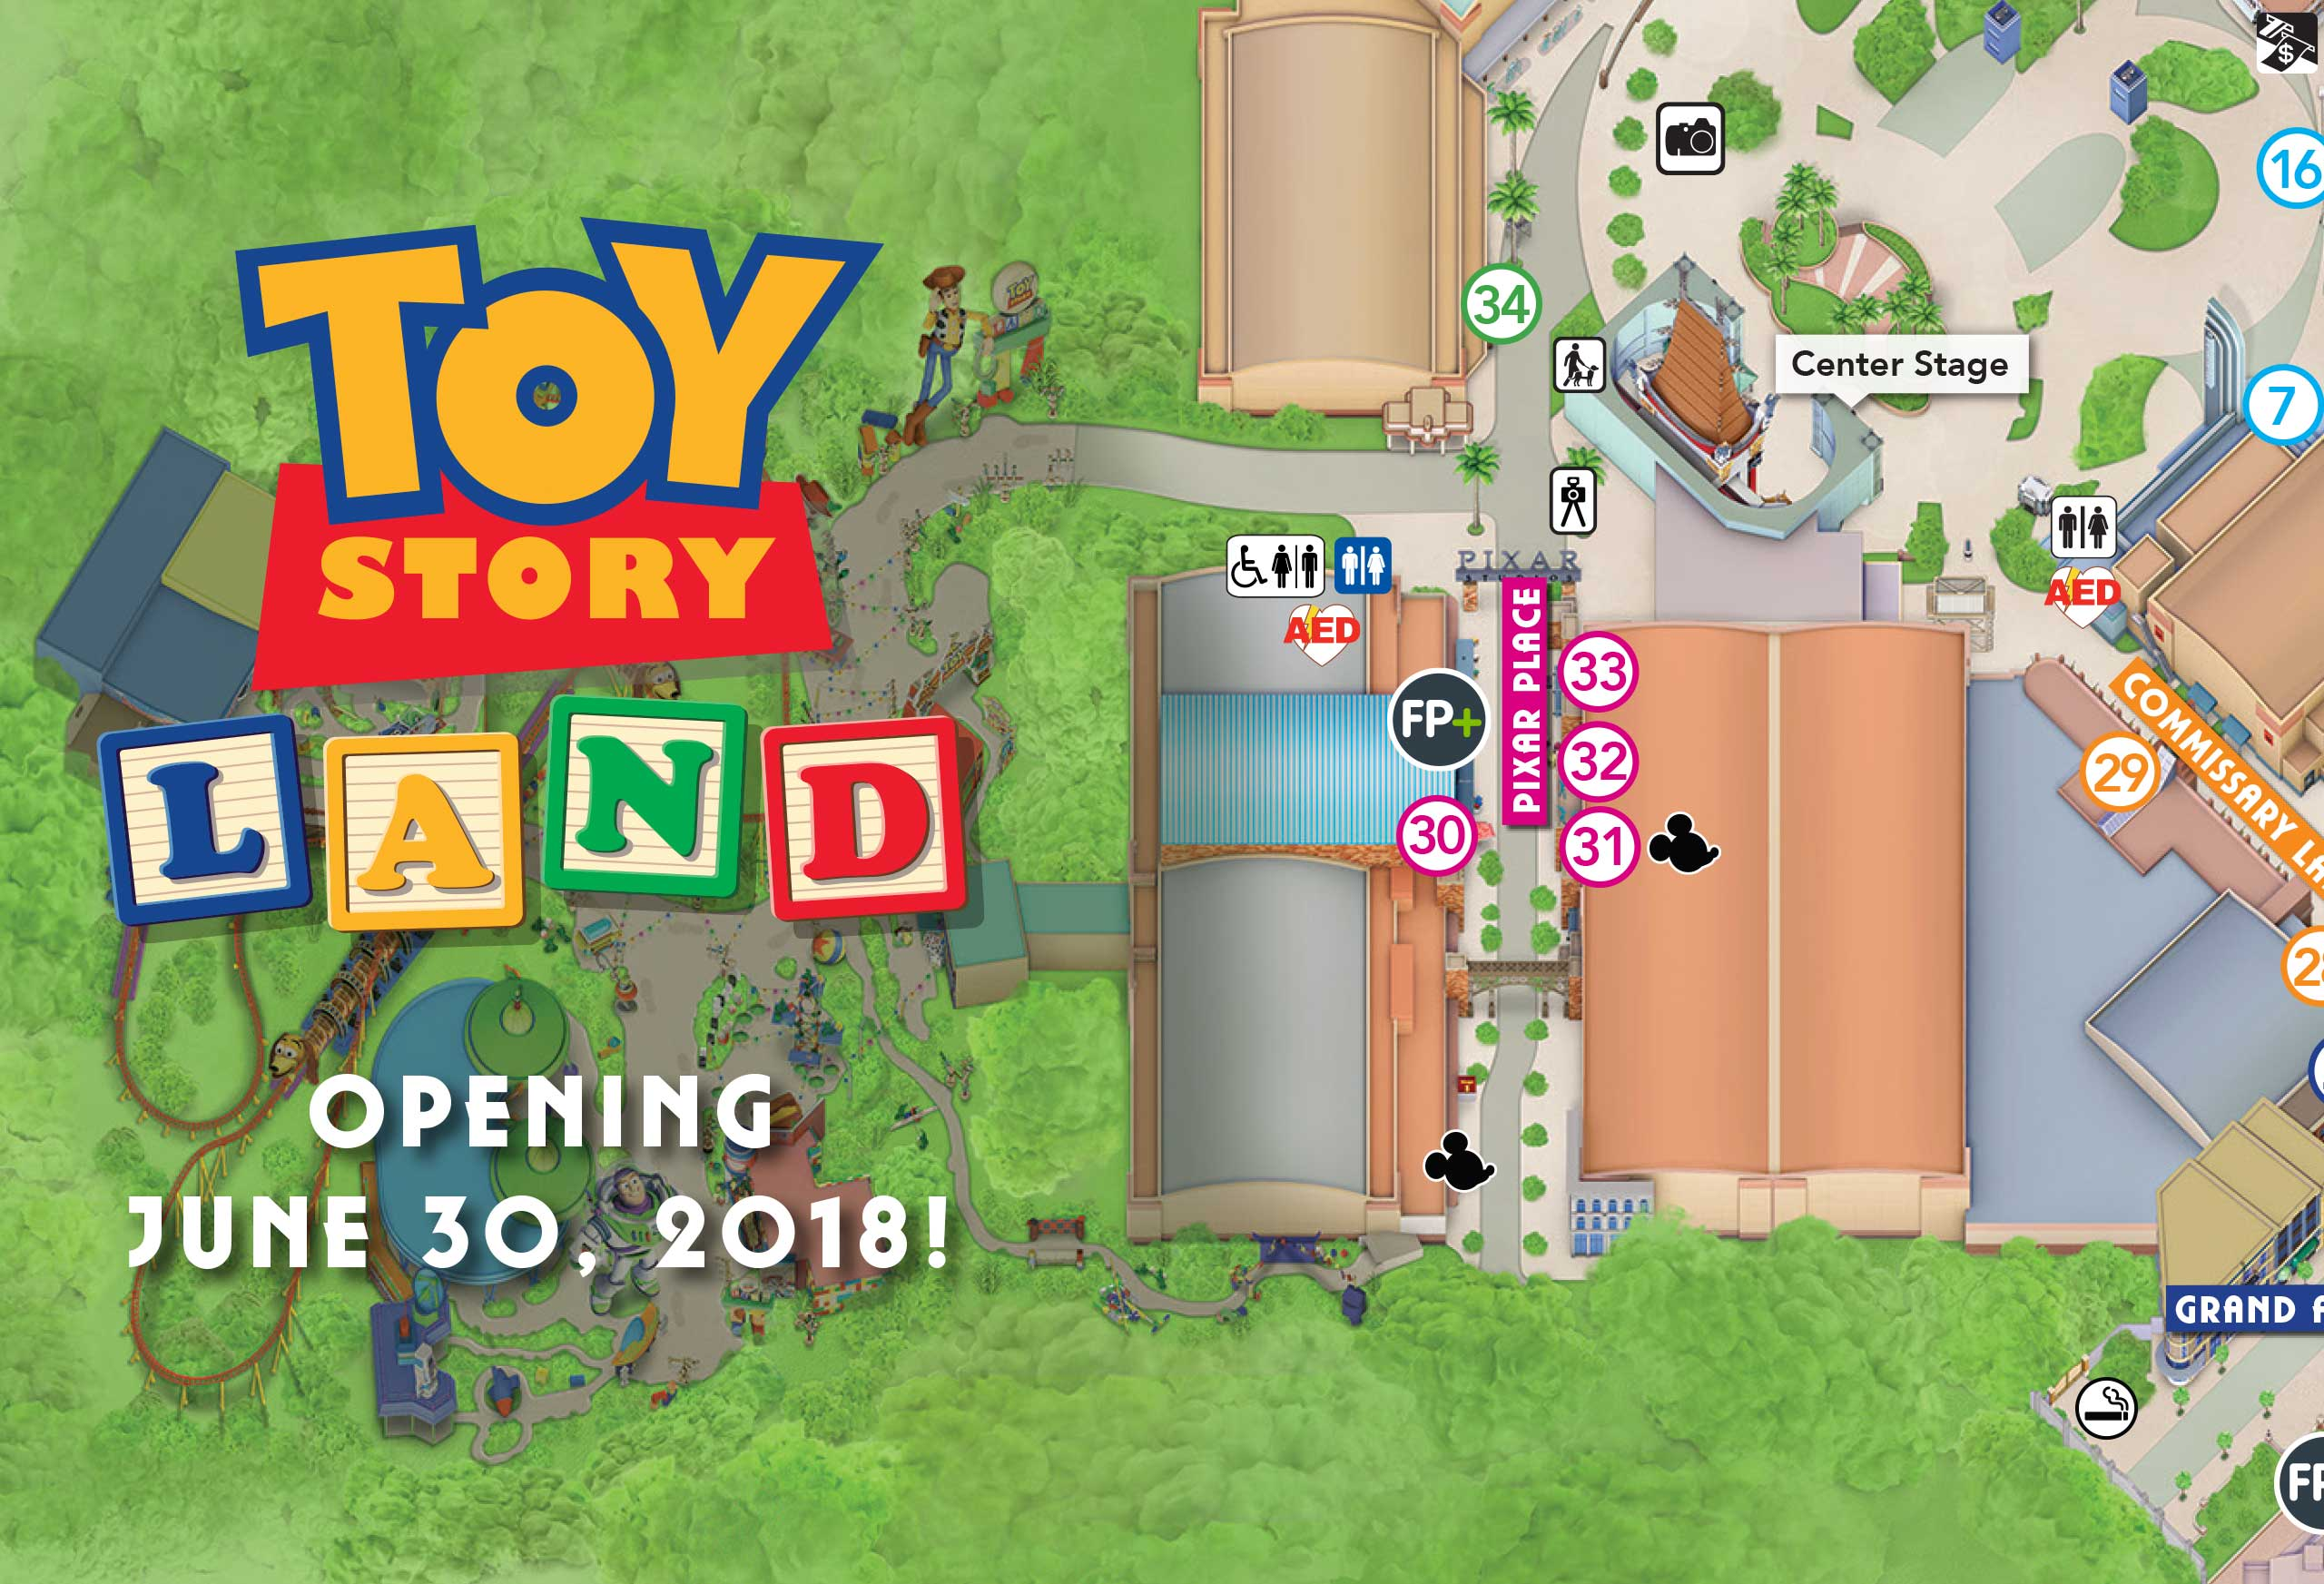 PHOTO - New guide map for Disney's Hollywood Studios shows Toy Story on